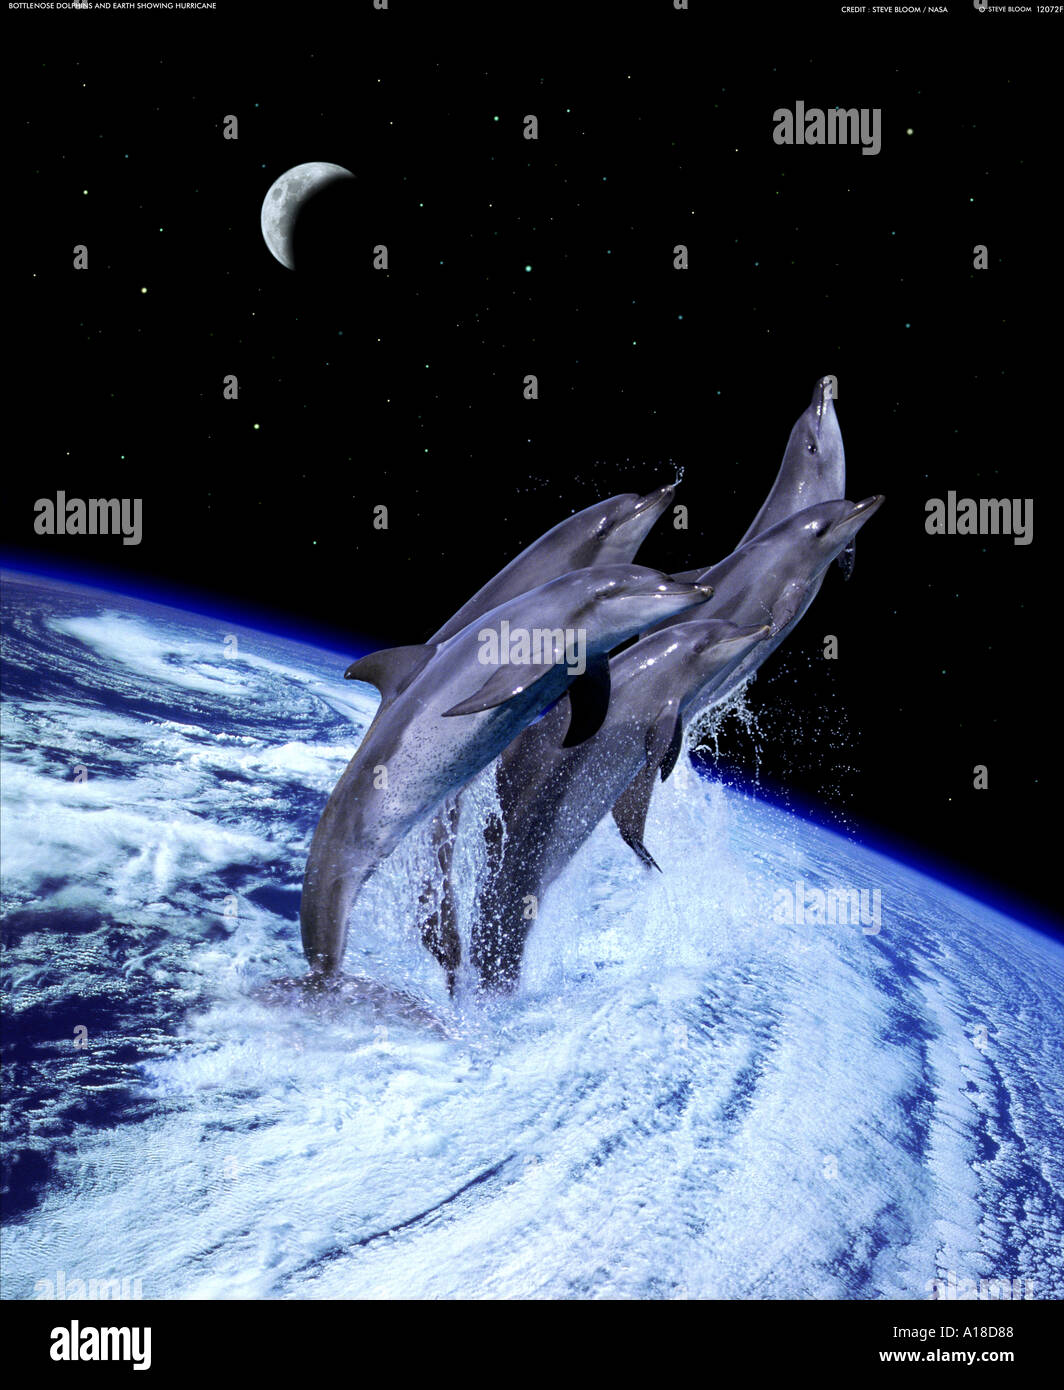 Dolphins leaping from a hurricane on earth - Stock Image